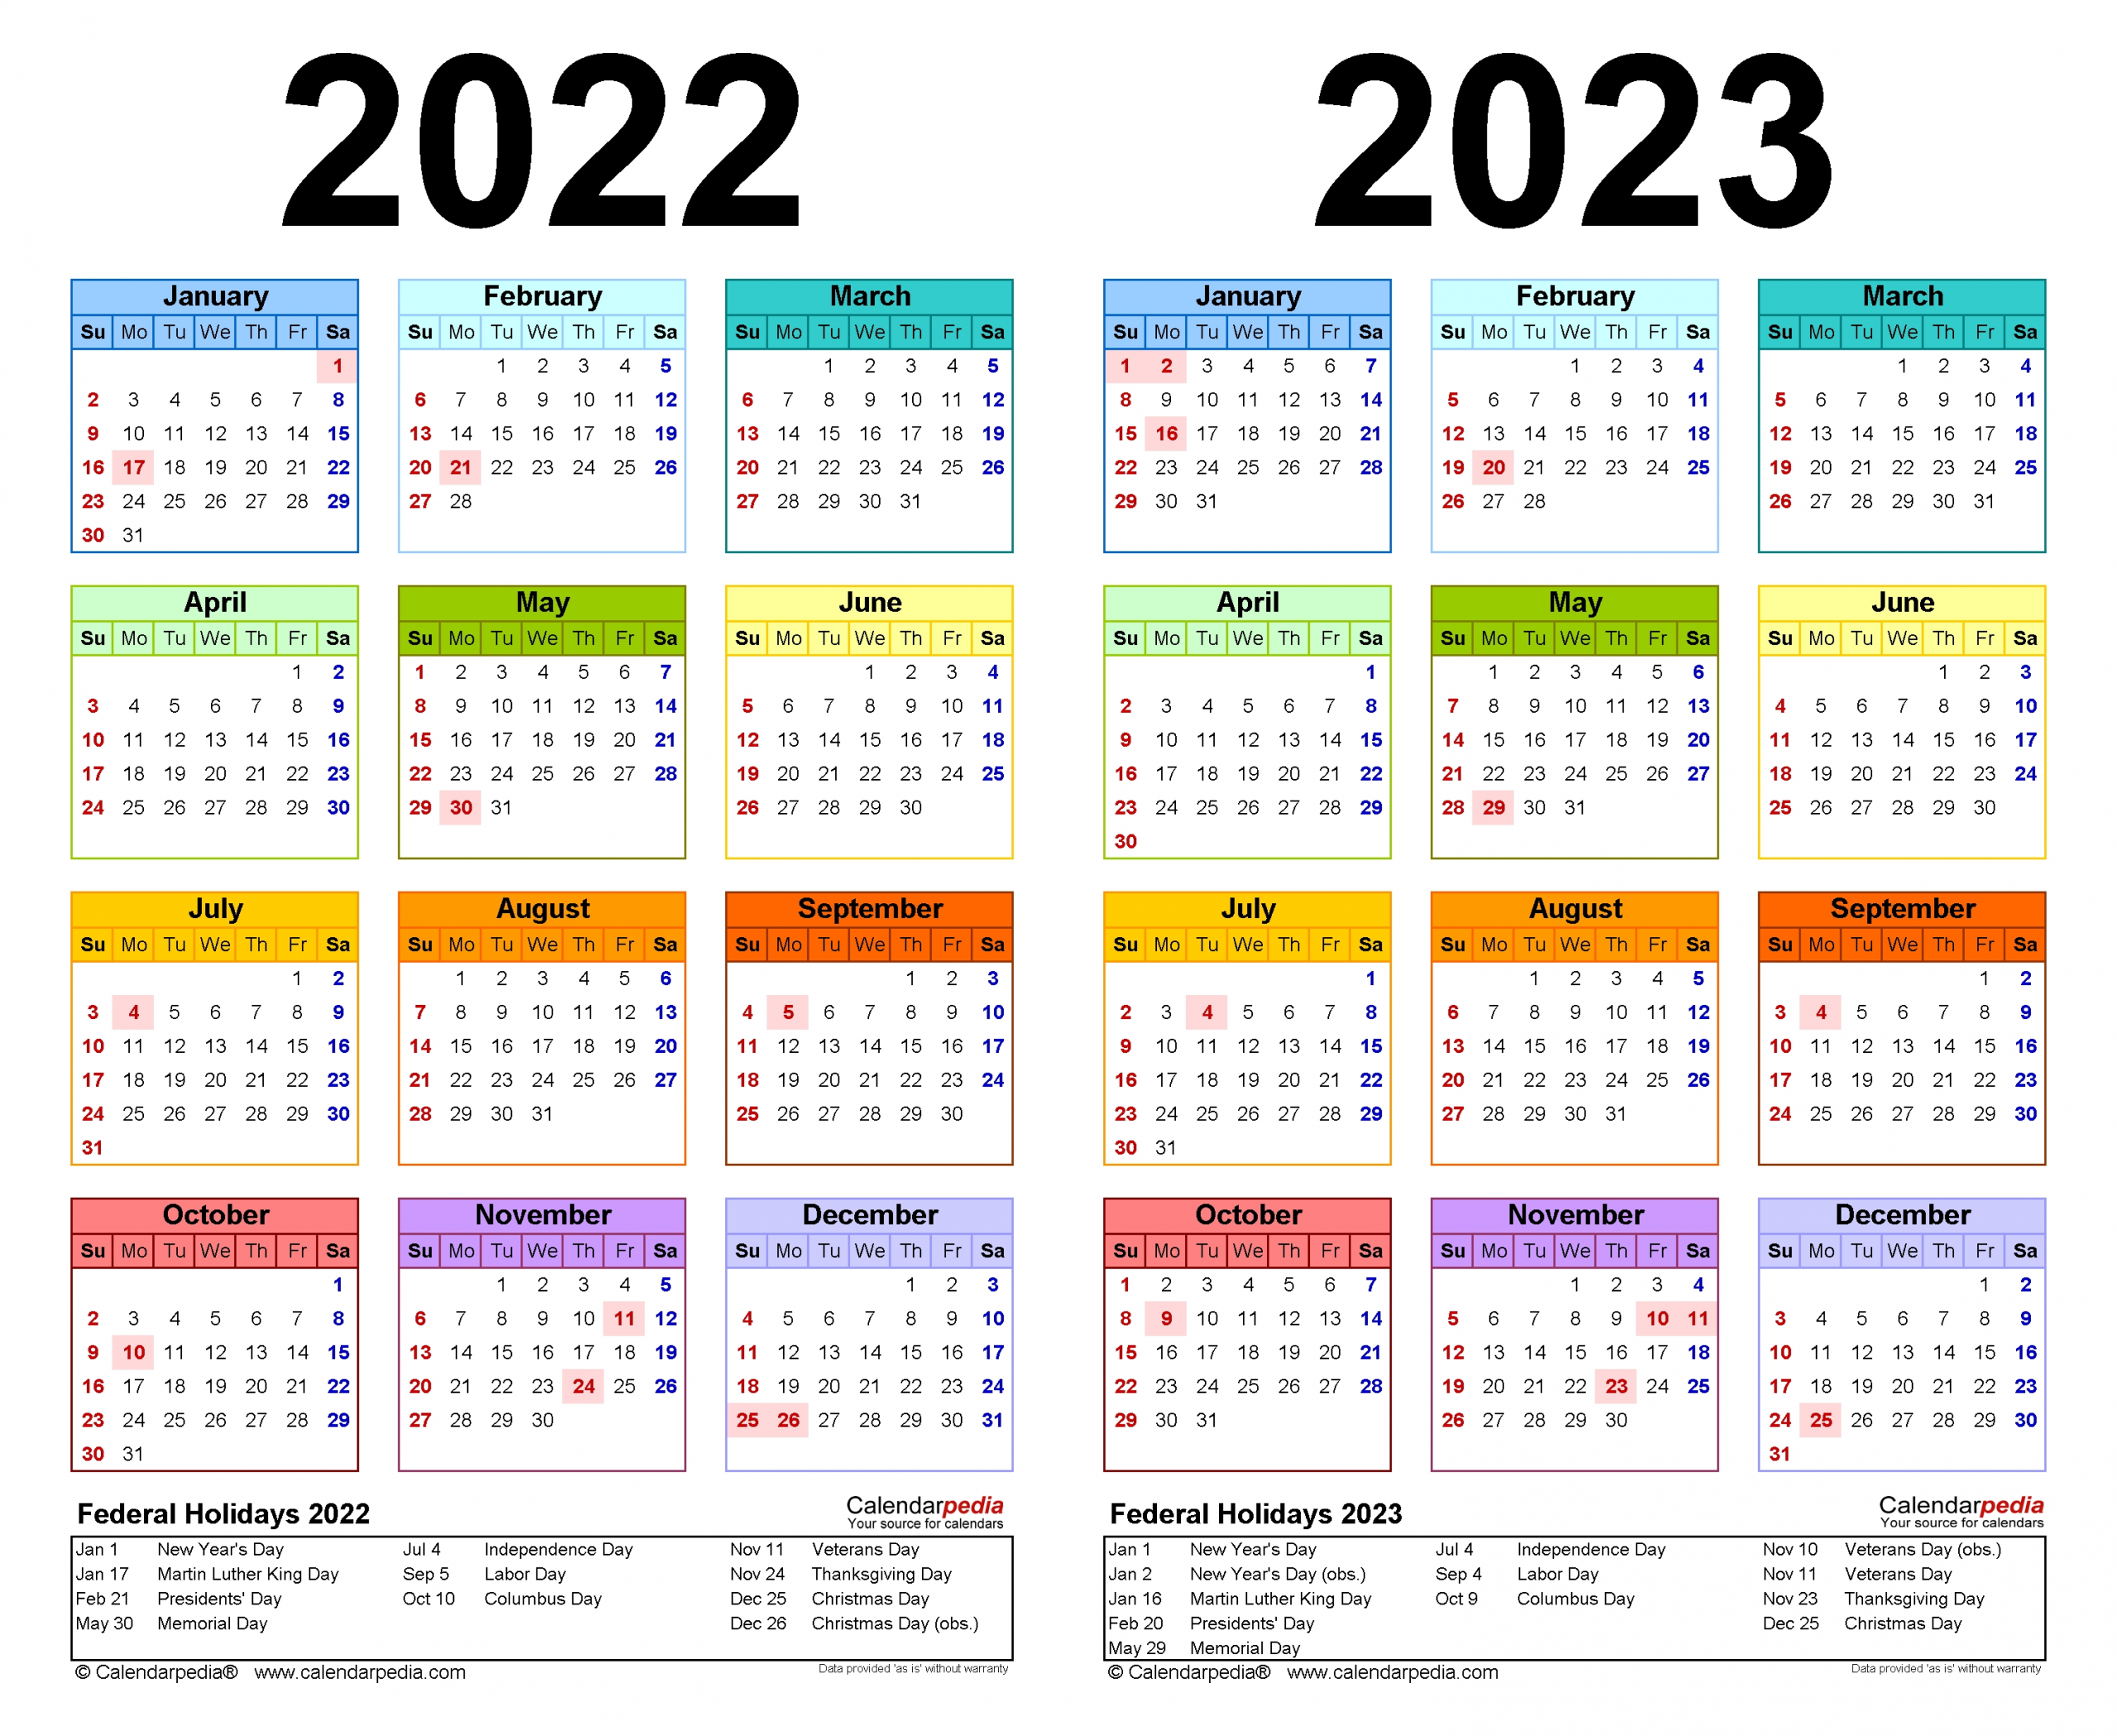 2022-2023 Two Year Calendar - Free Printable Word Templates-3 Year Calendars 2021 2022 2023 Free Printable